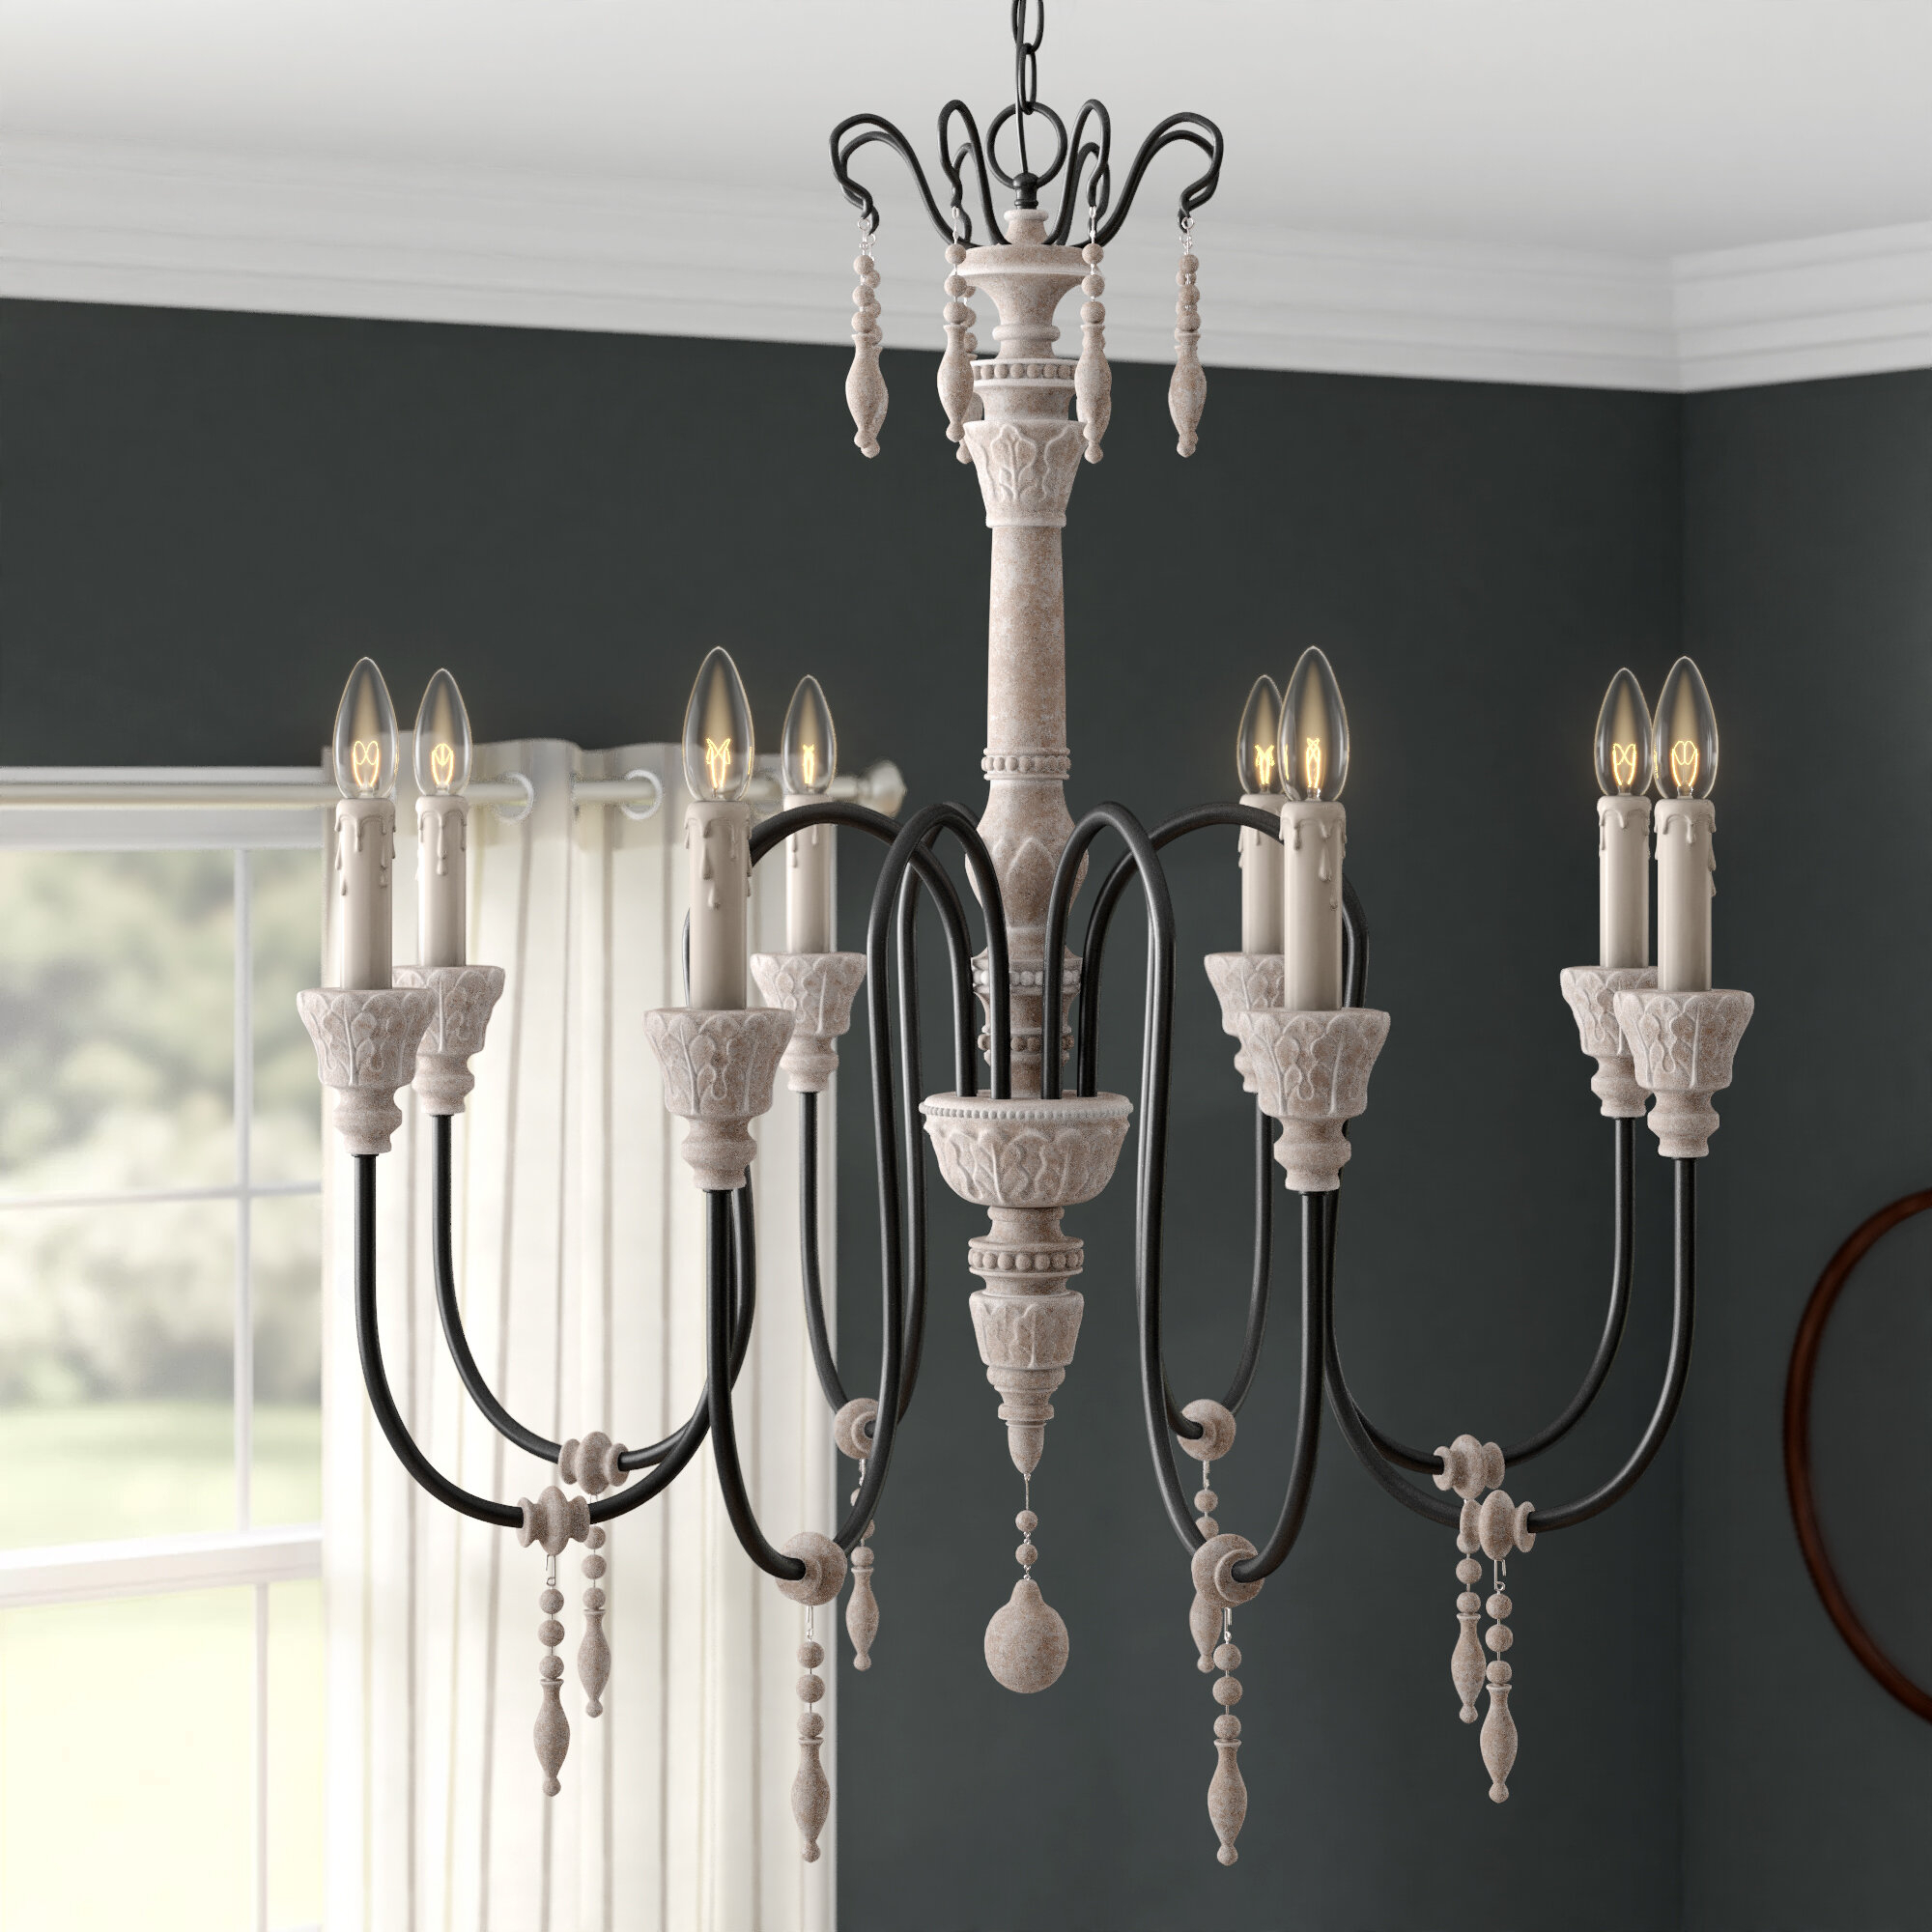 Ailsa 8-Light Candle Style Chandelier in Corneau 5-Light Chandeliers (Image 3 of 30)